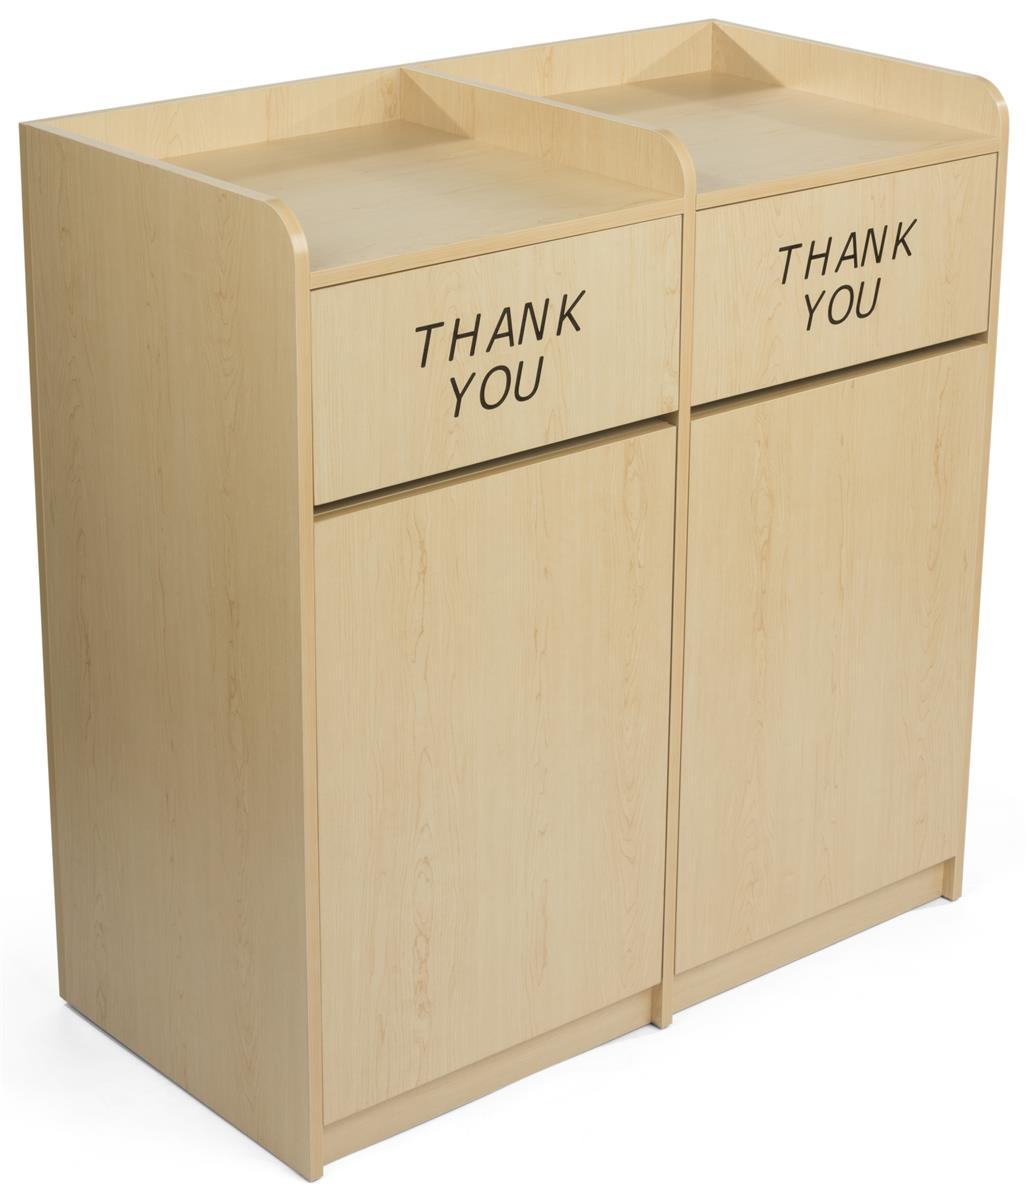 Maple Wooden Restaurant Trash Cans Engraved Thank You